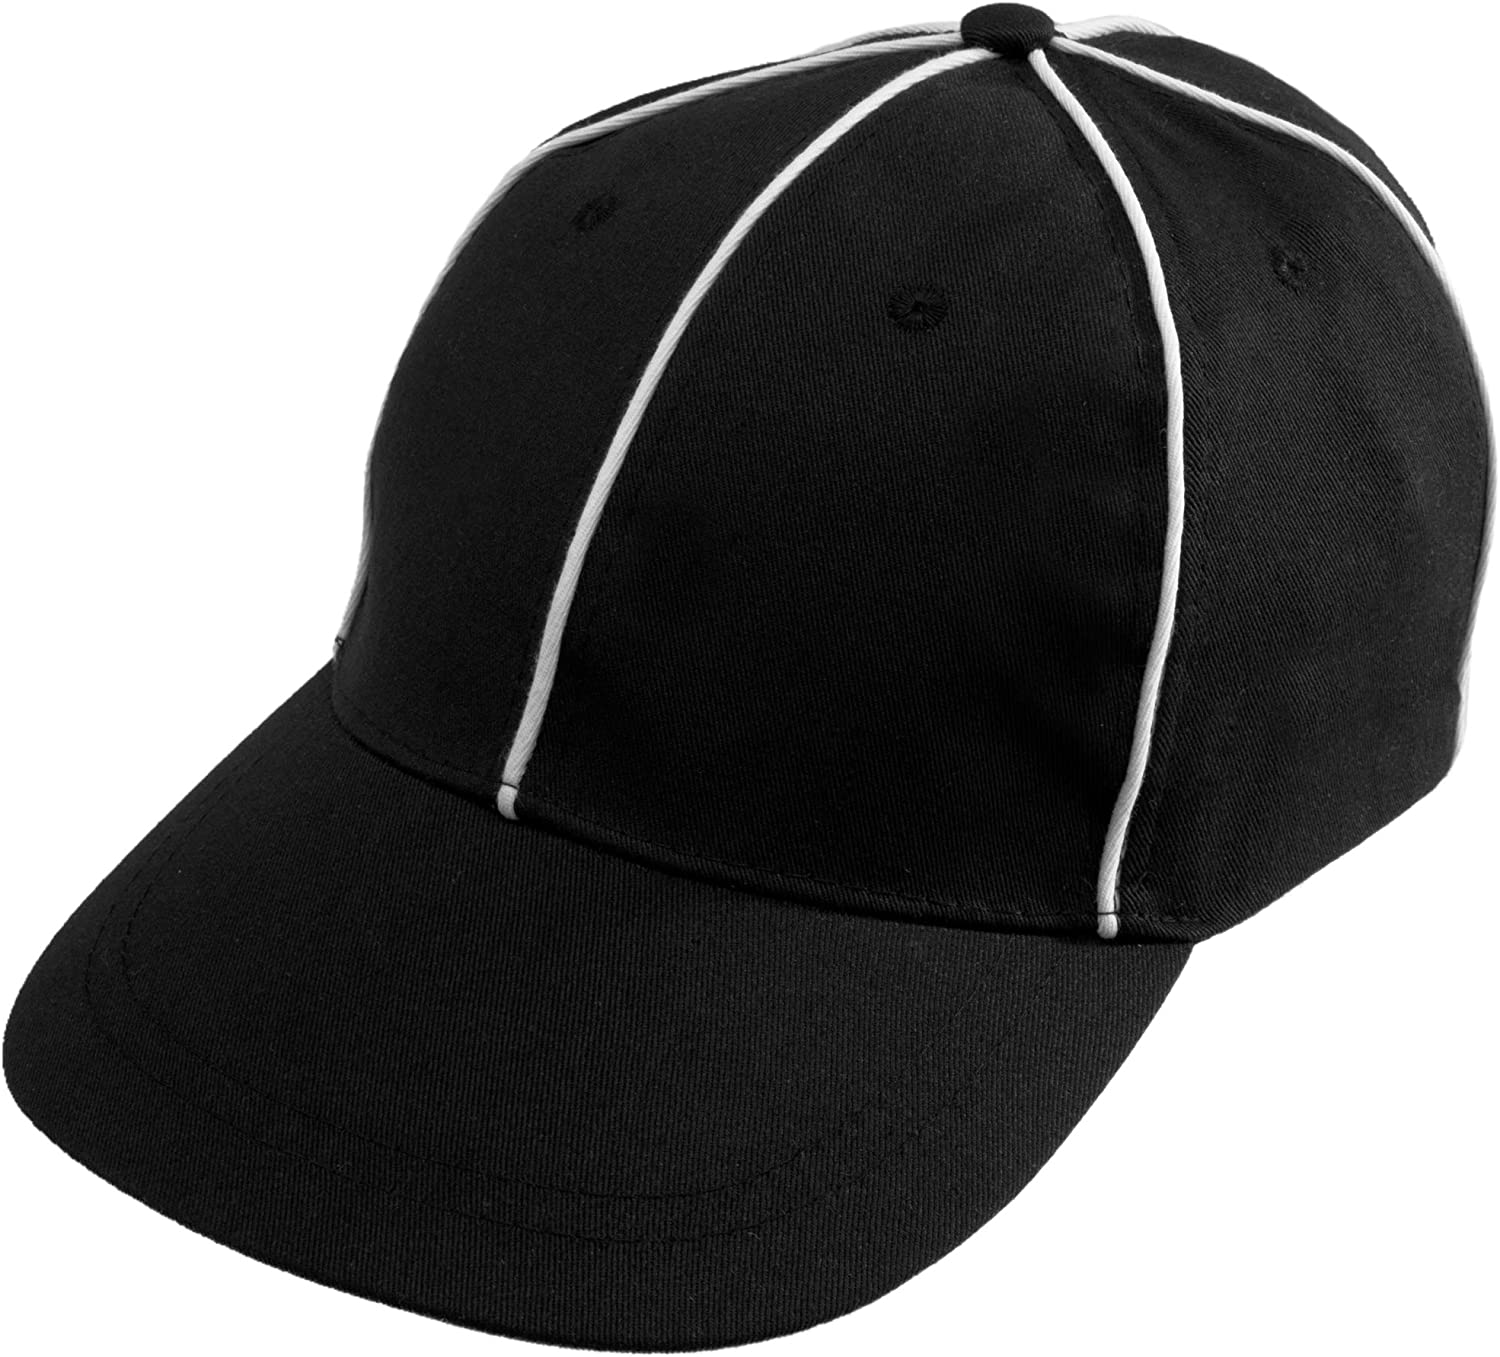 Crown Sporting Goods Official Referee Hat – Adjustable Black with White Stripes Ball Cap – Great for Football Refs, Umpires, Judges, & Linesman Uniforms